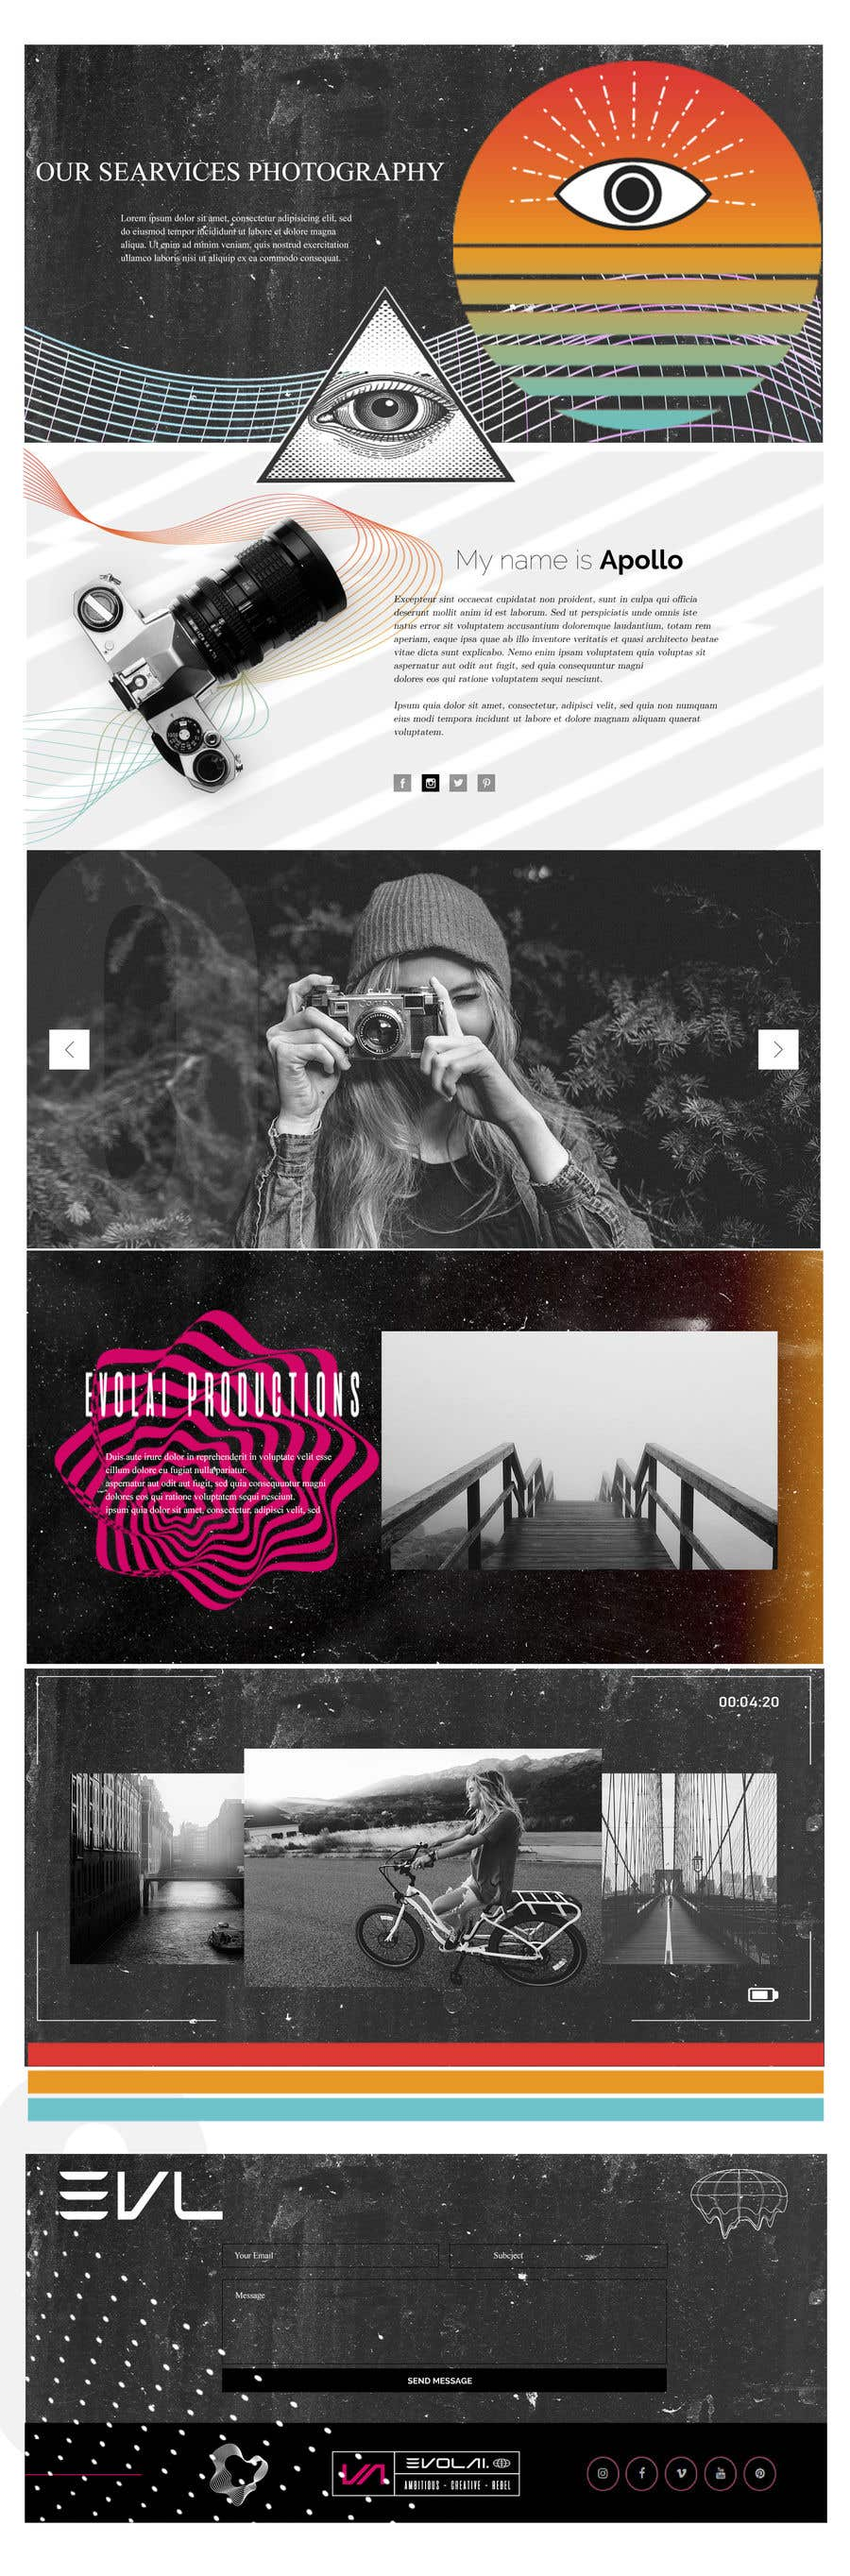 Contest Entry #                                        11                                      for                                         Web Page Design - redesign Services page for photography business